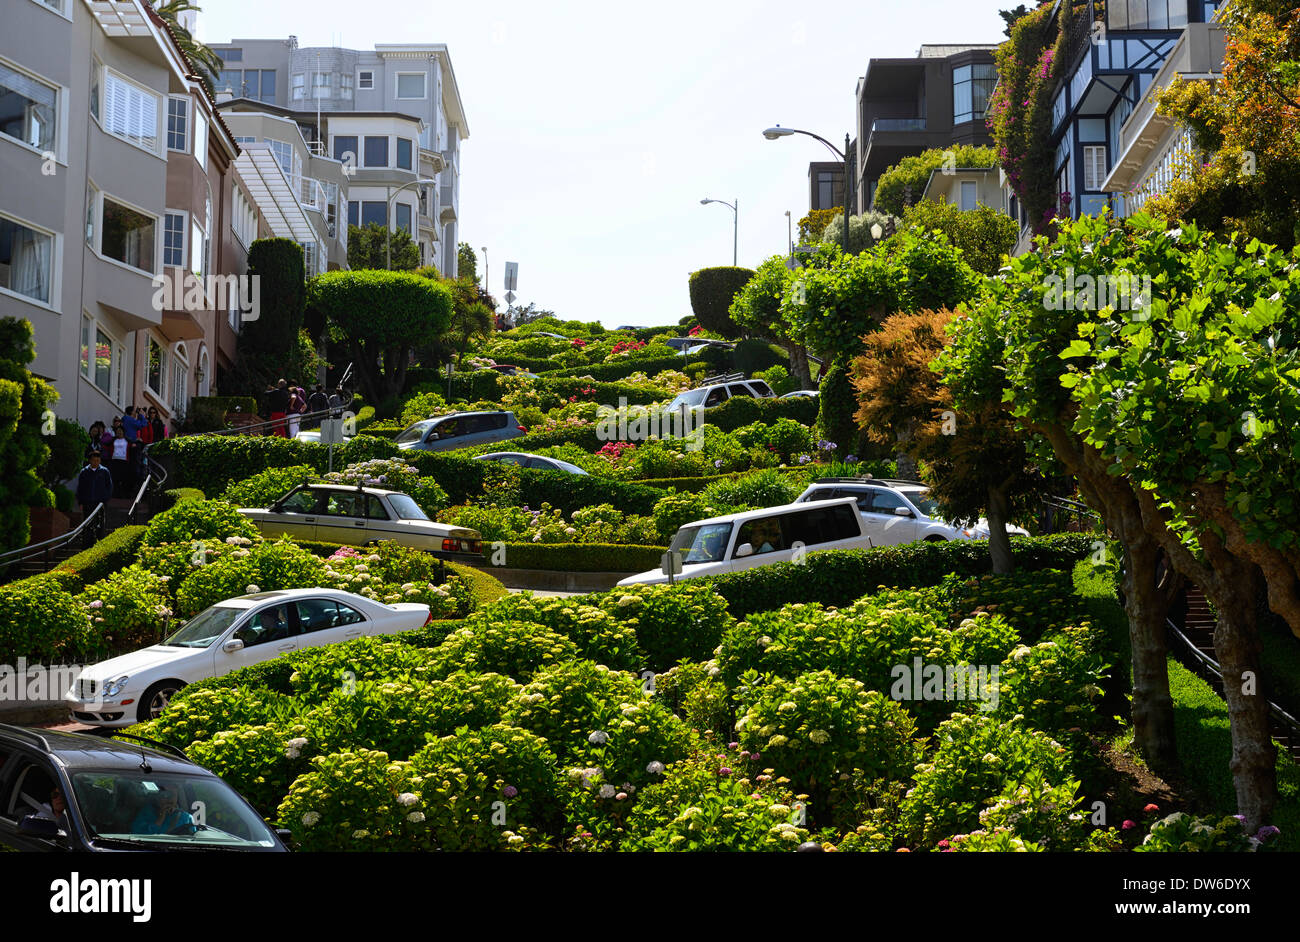 Lombard street direct traffic cruise cruising crooked crookedest twist turn steep bends bendy acute tight twist twisty marshall - Stock Image